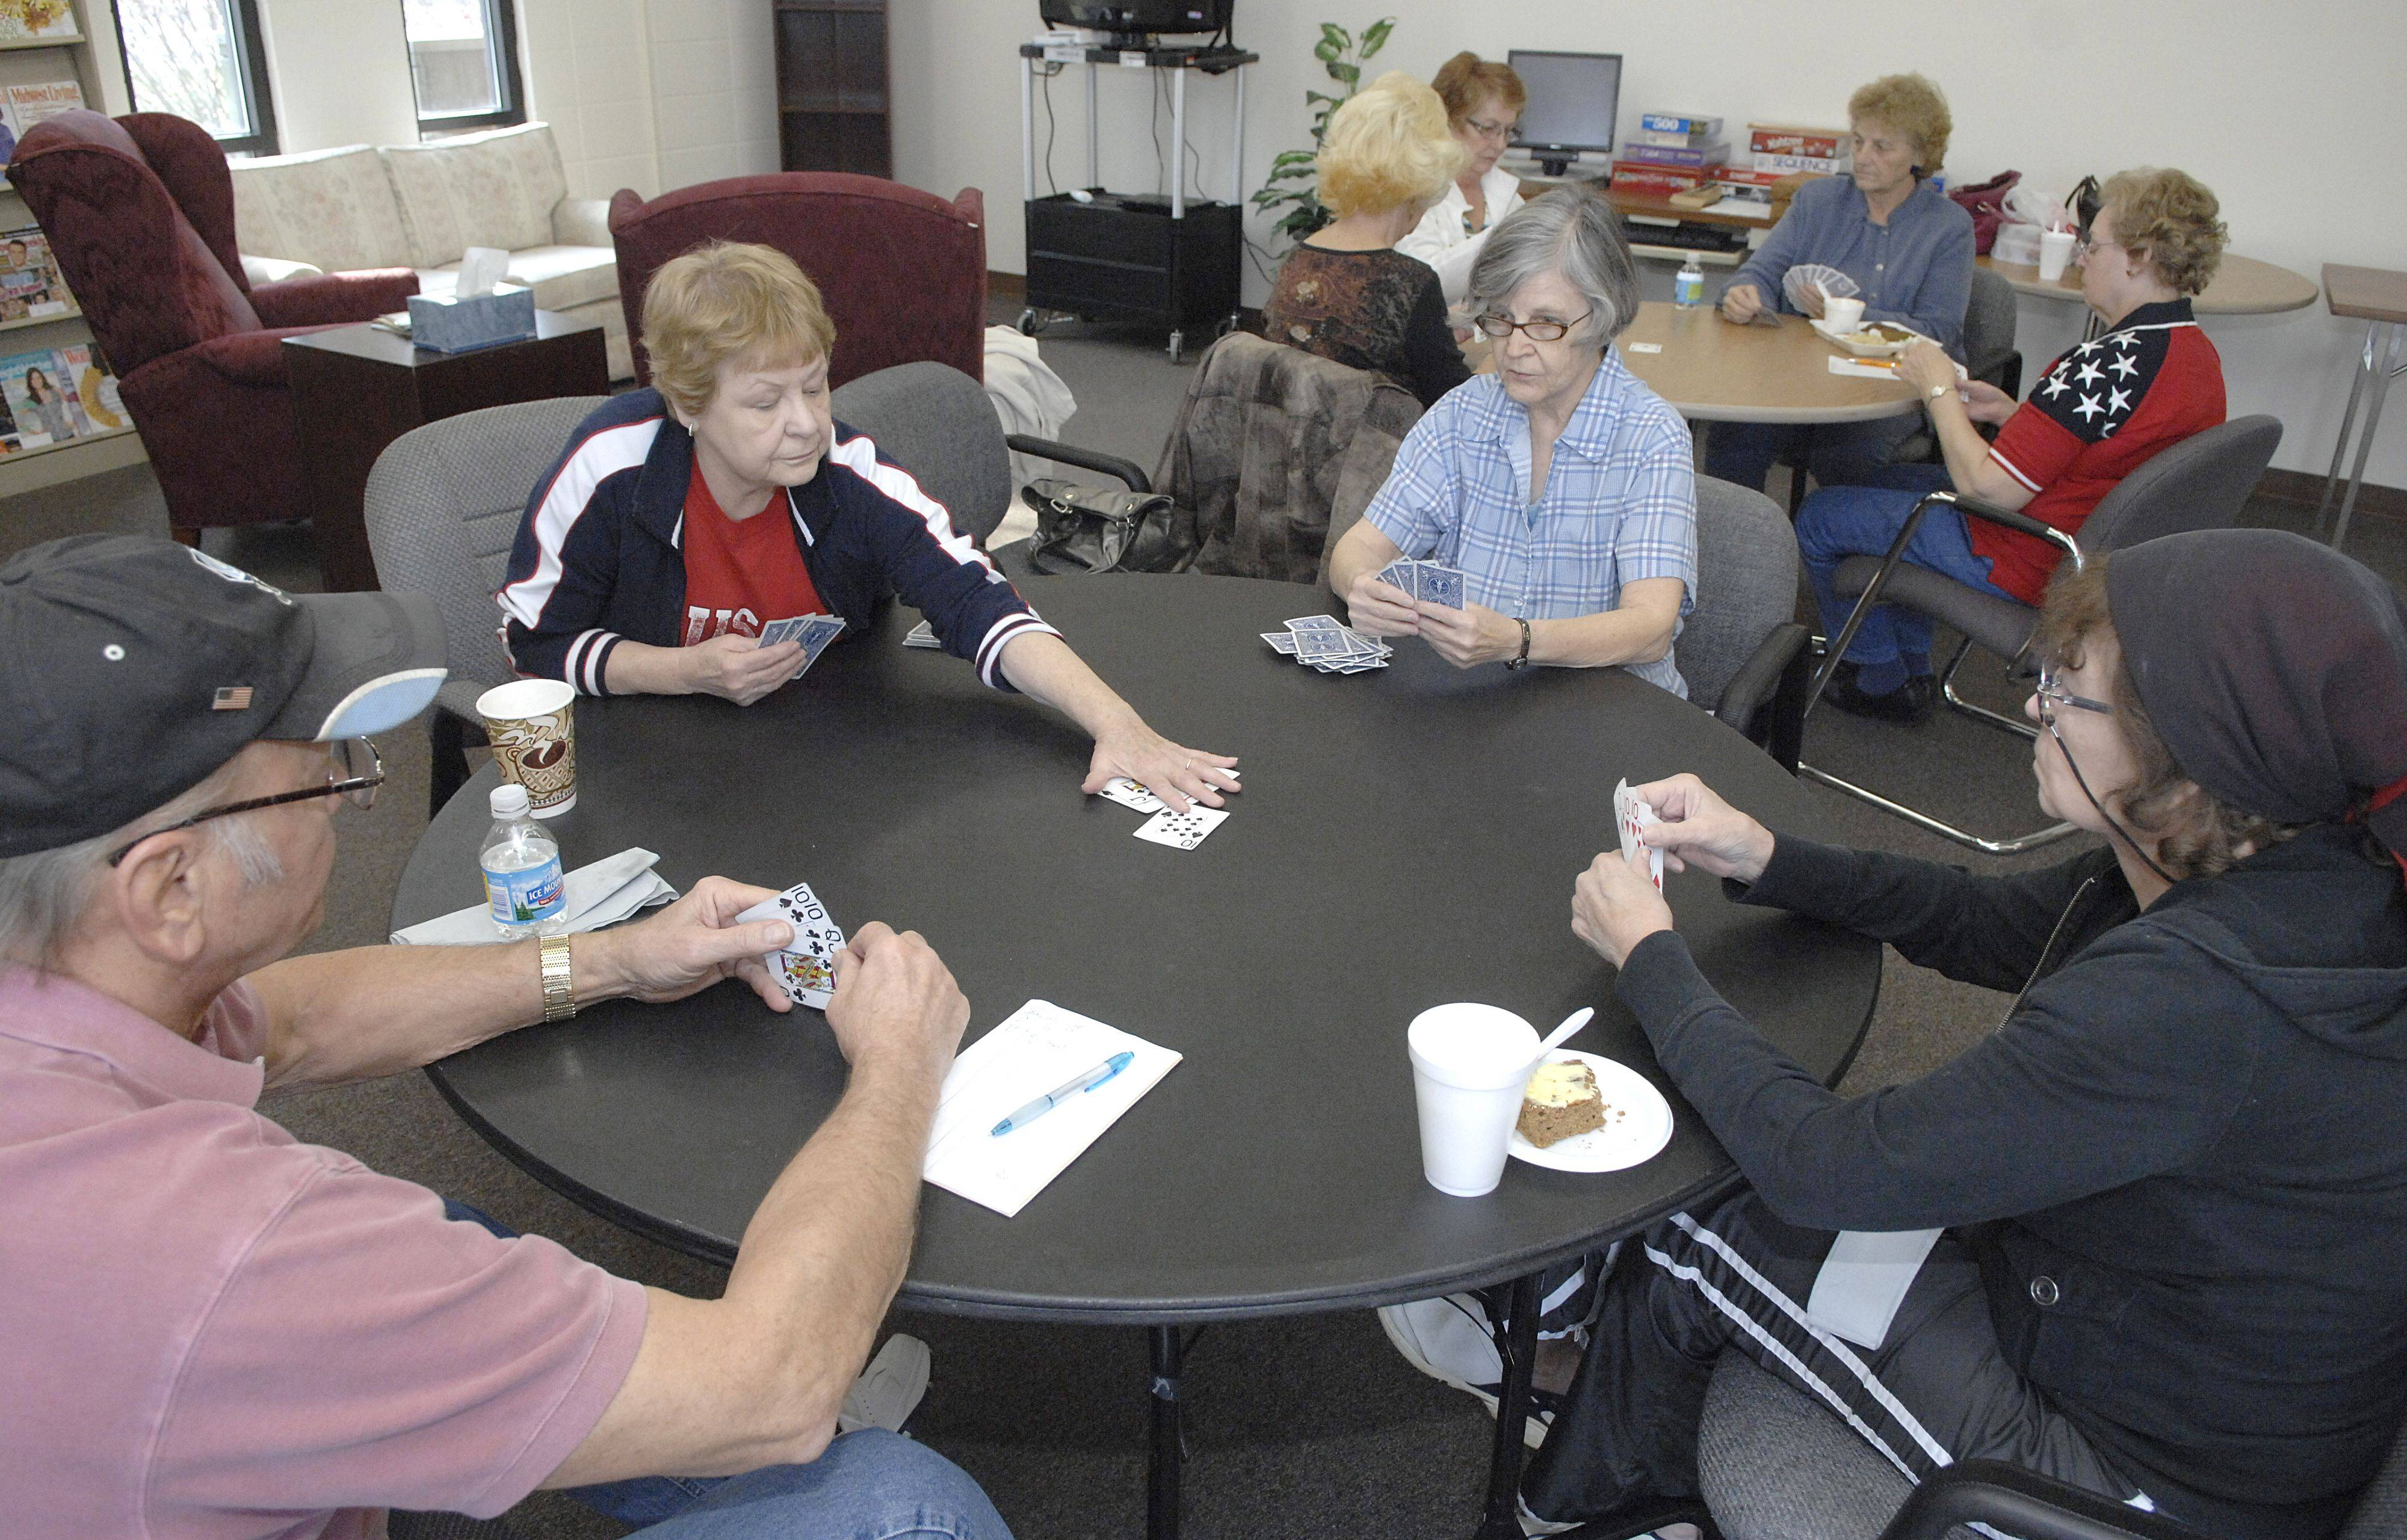 Dan Palmer of North Aurora, Margaret Hilger of Sugar Grove, Ruth Weekly of Sugar Grove and Sandra McClellen of Elburn play a hand of pinochle at the Sugar Grove Older Adult Center earlier this month.